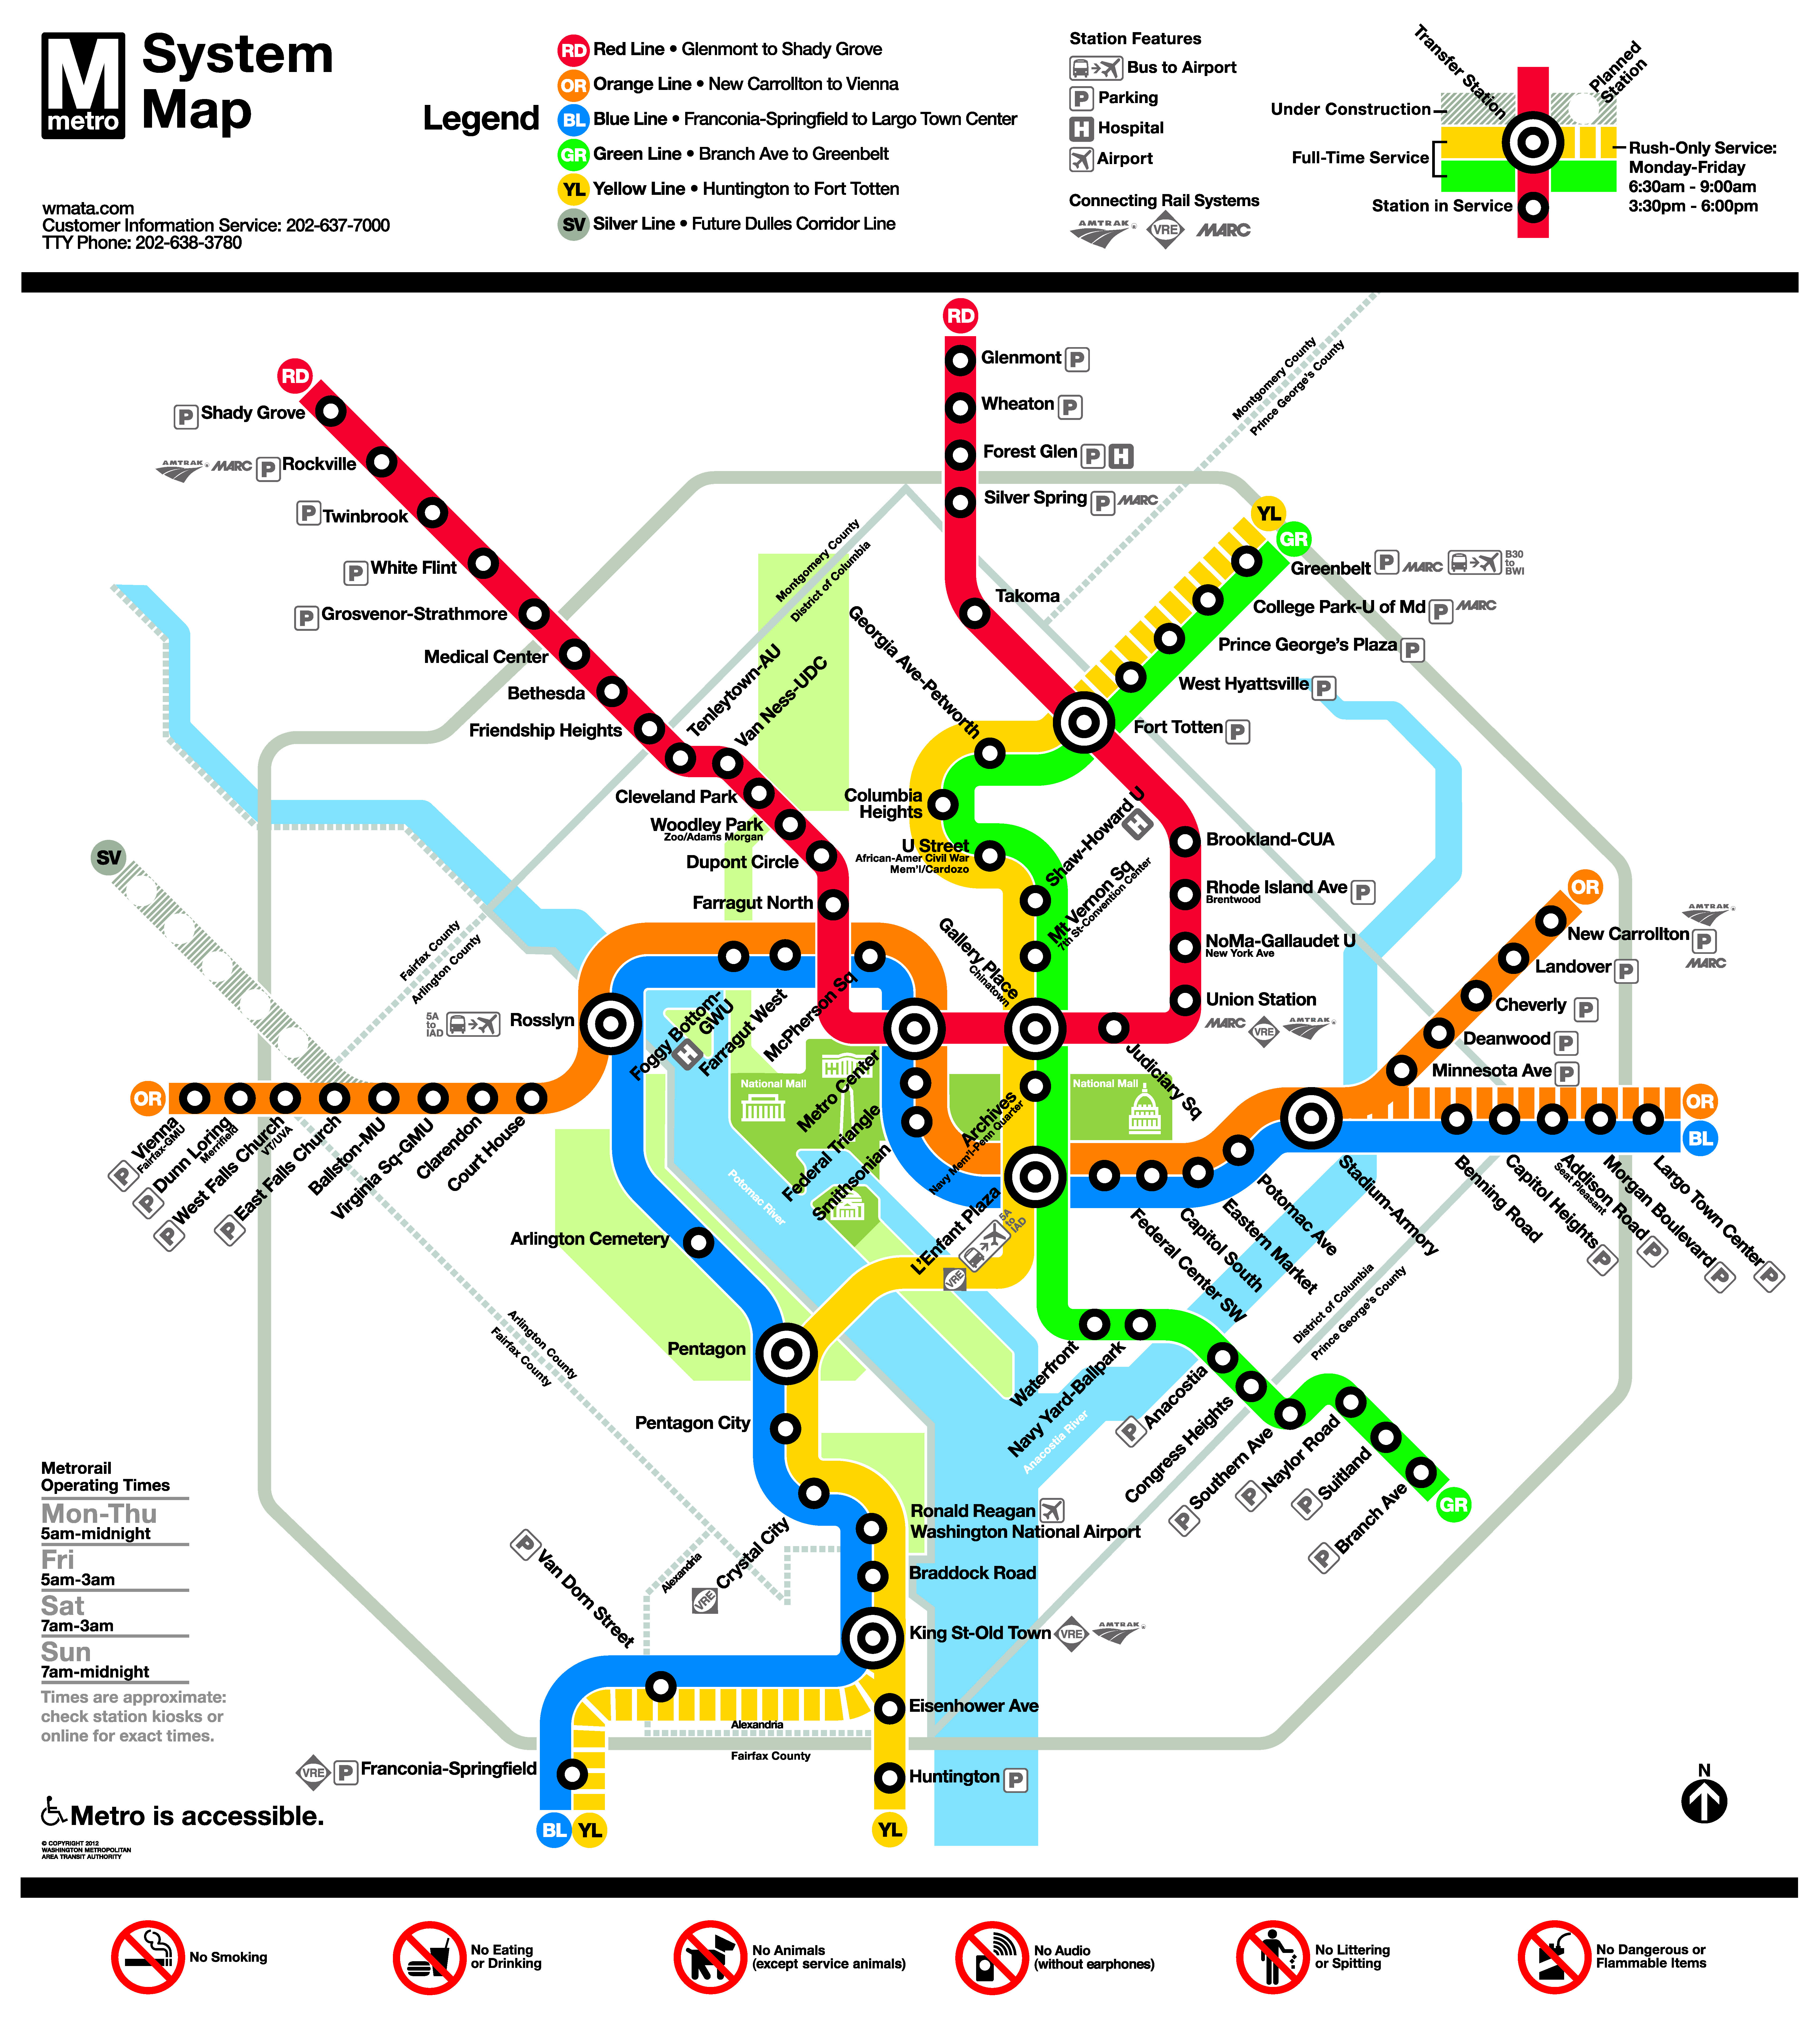 Following up on previous post about DC Metro's New Map.. | Erika ...: erikamosher.com/2012/03/24/following-up-on-previous-post-about-dc...